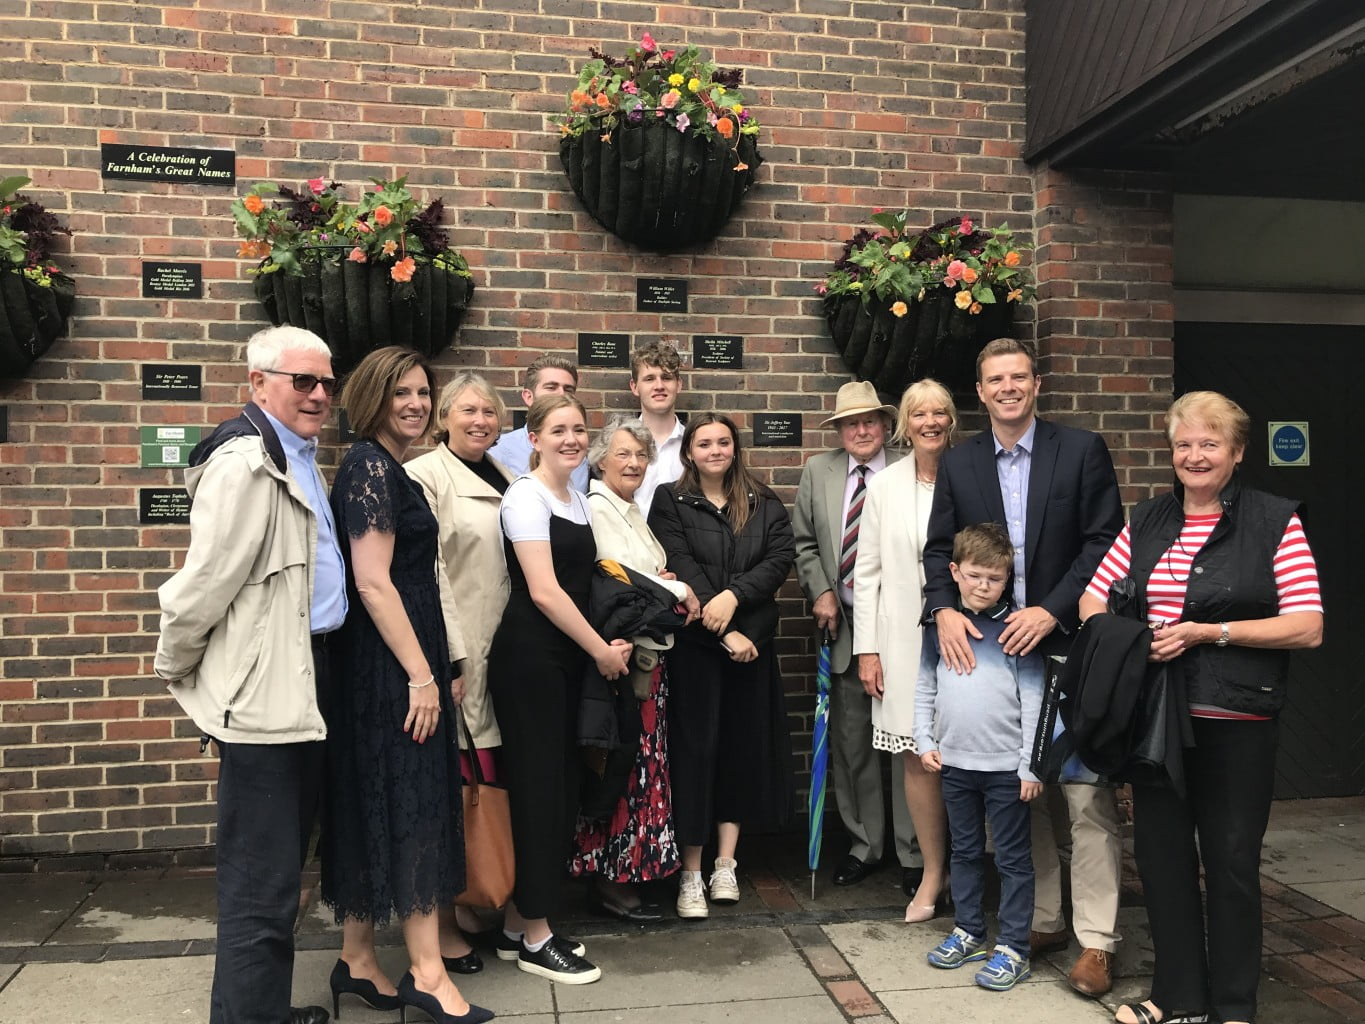 Family of Sir Jeffrey Tate CBE at the unveiling of Famous Names plaque